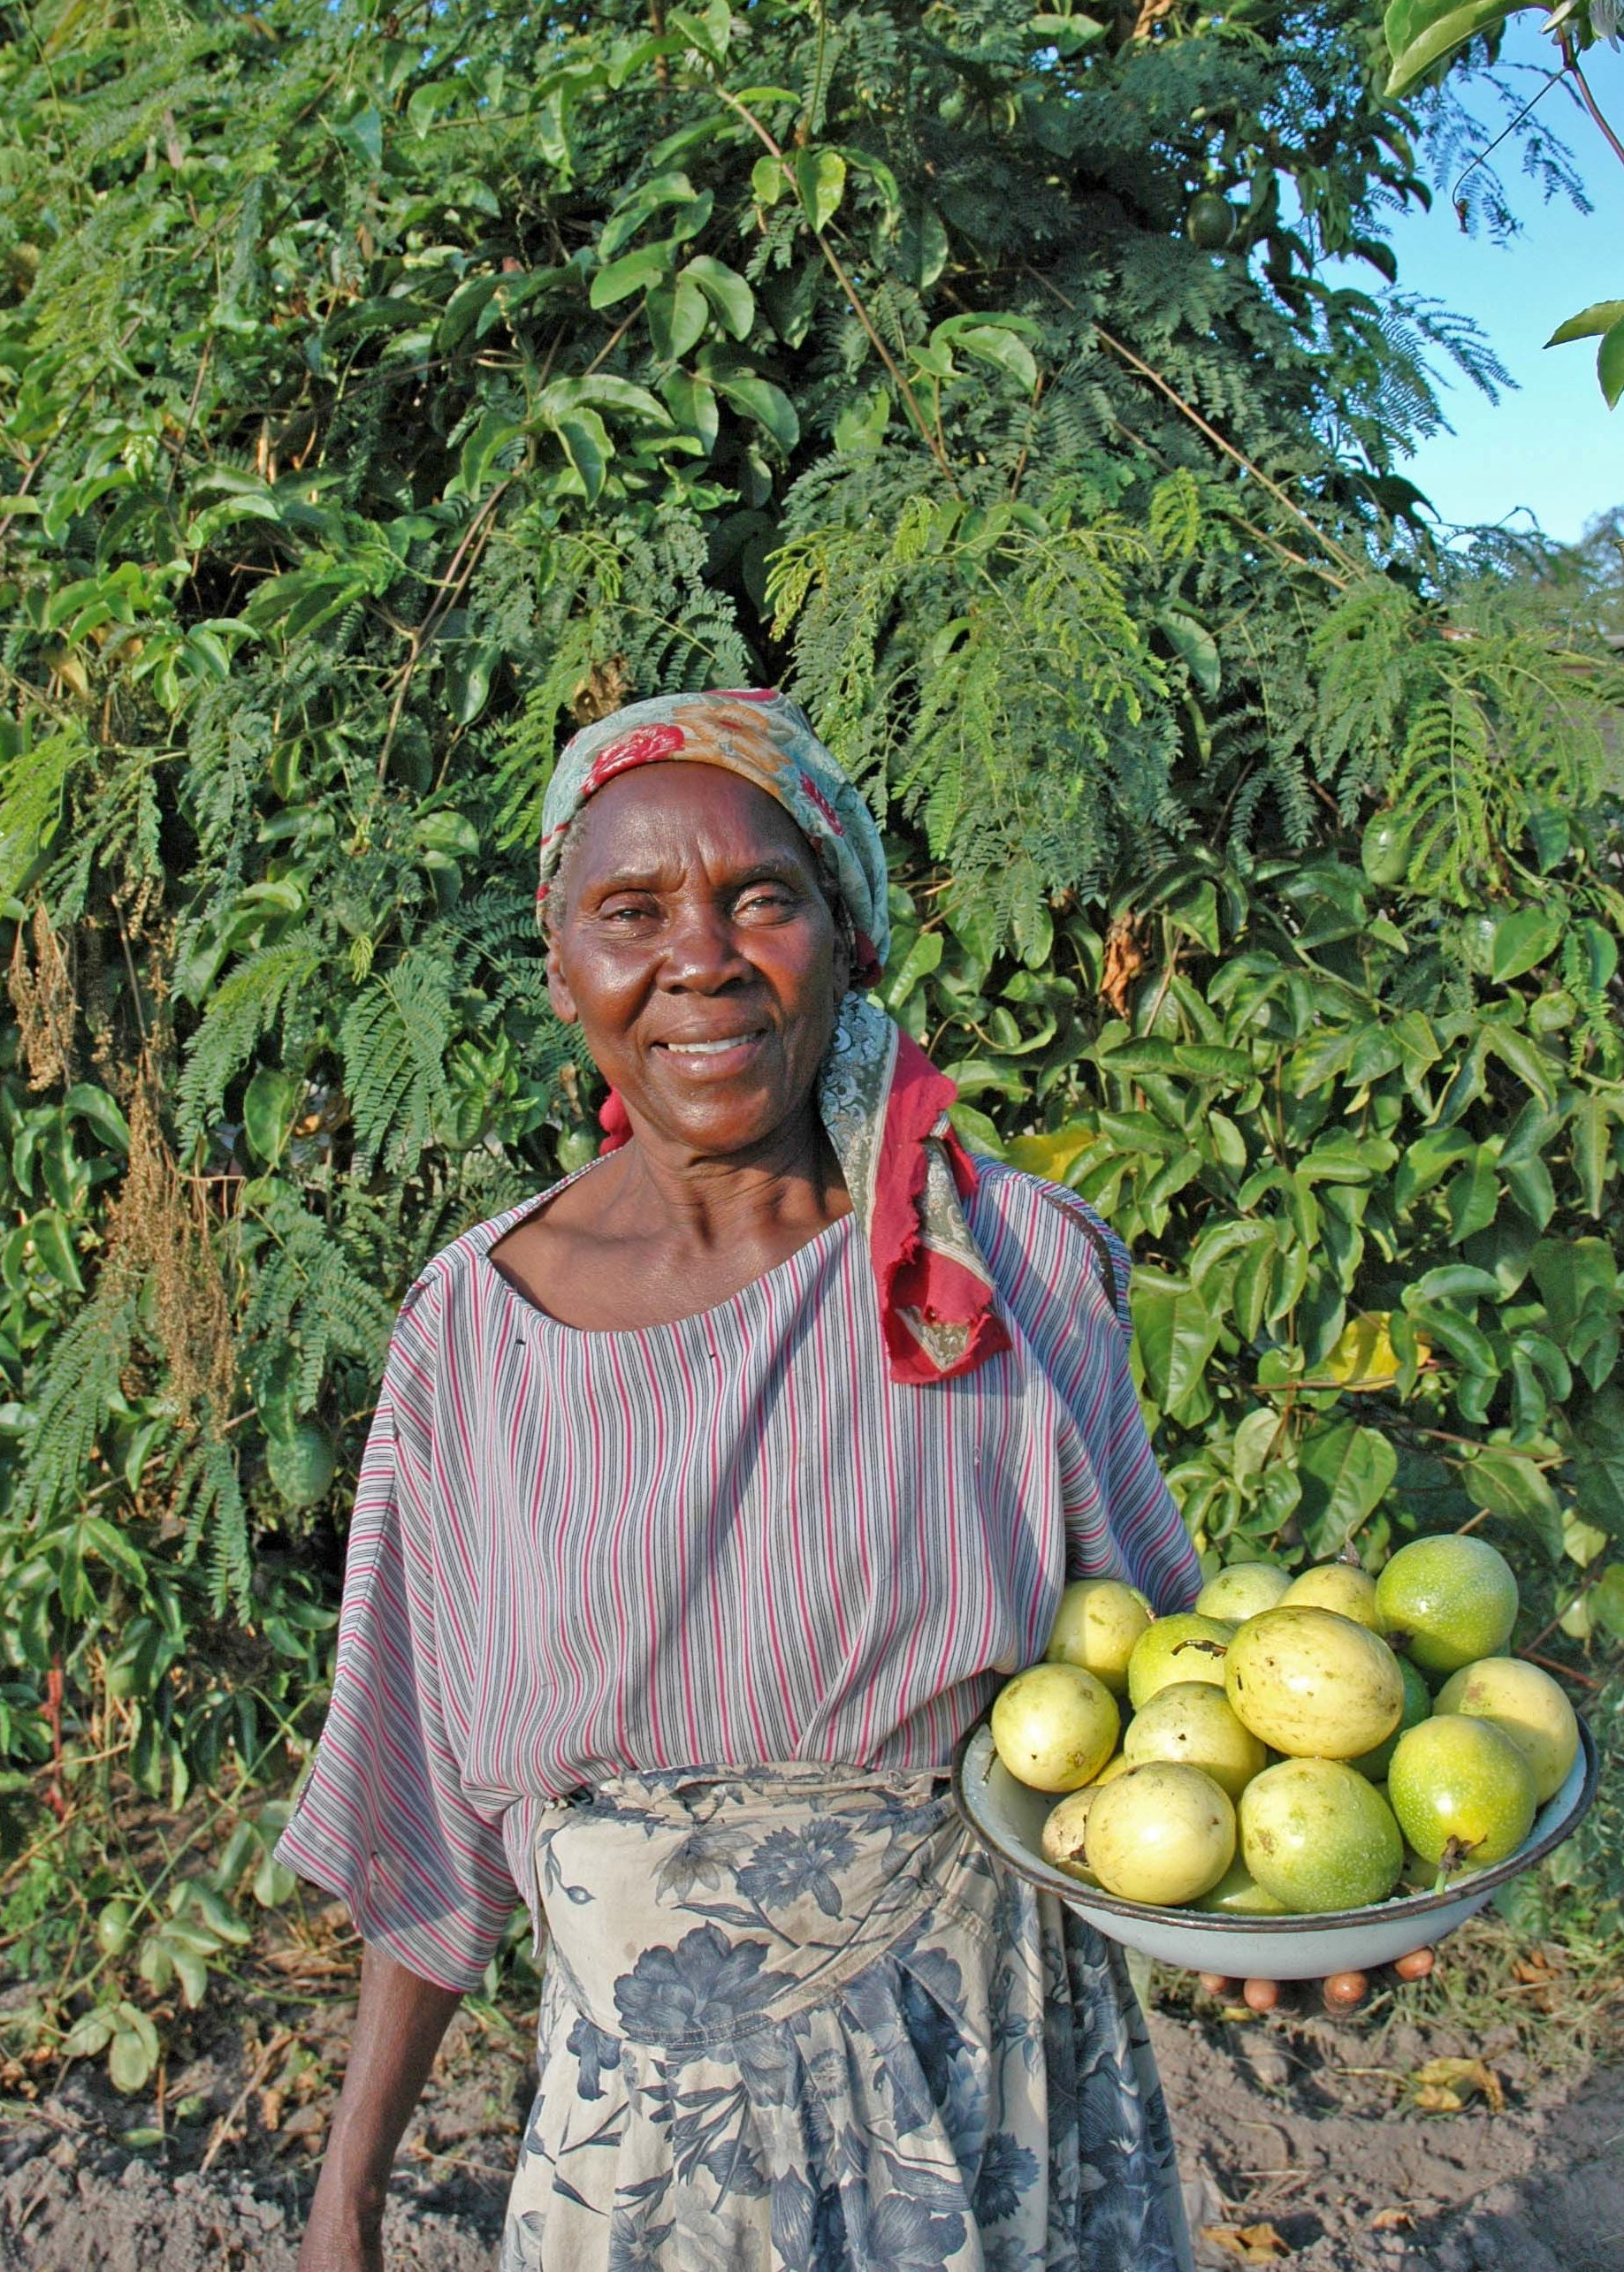 Esther_Gama_with_granadilla_on_plate_at_nutritional_garden_2_Chiweshe_Zimbabwe_March_2005